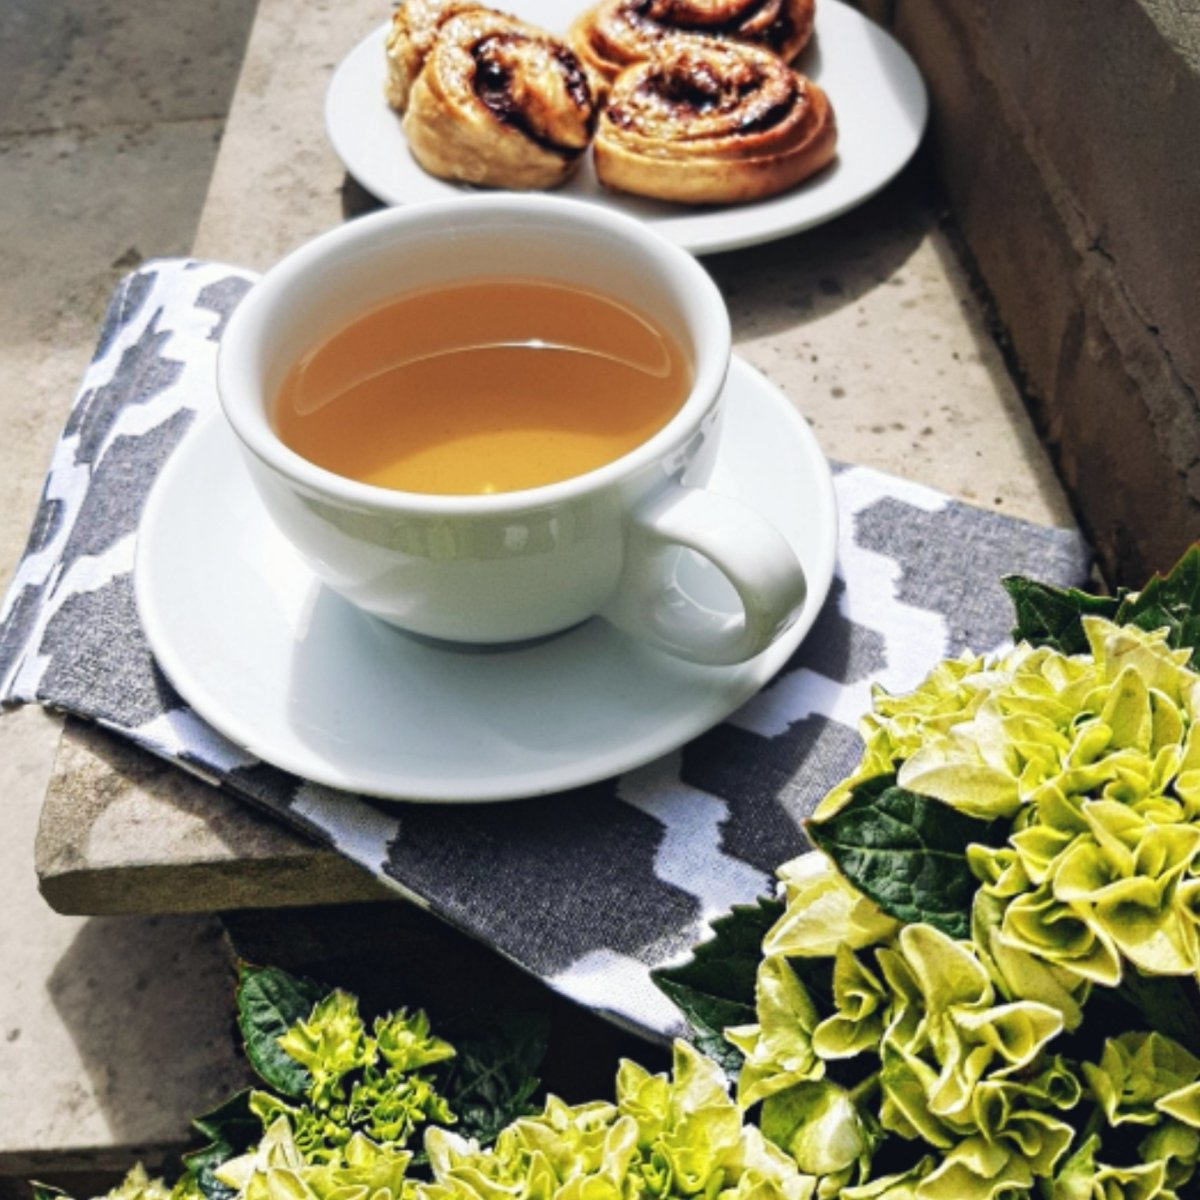 Homemade Vegan Cinnamon Buns | Mystic Brew Teas